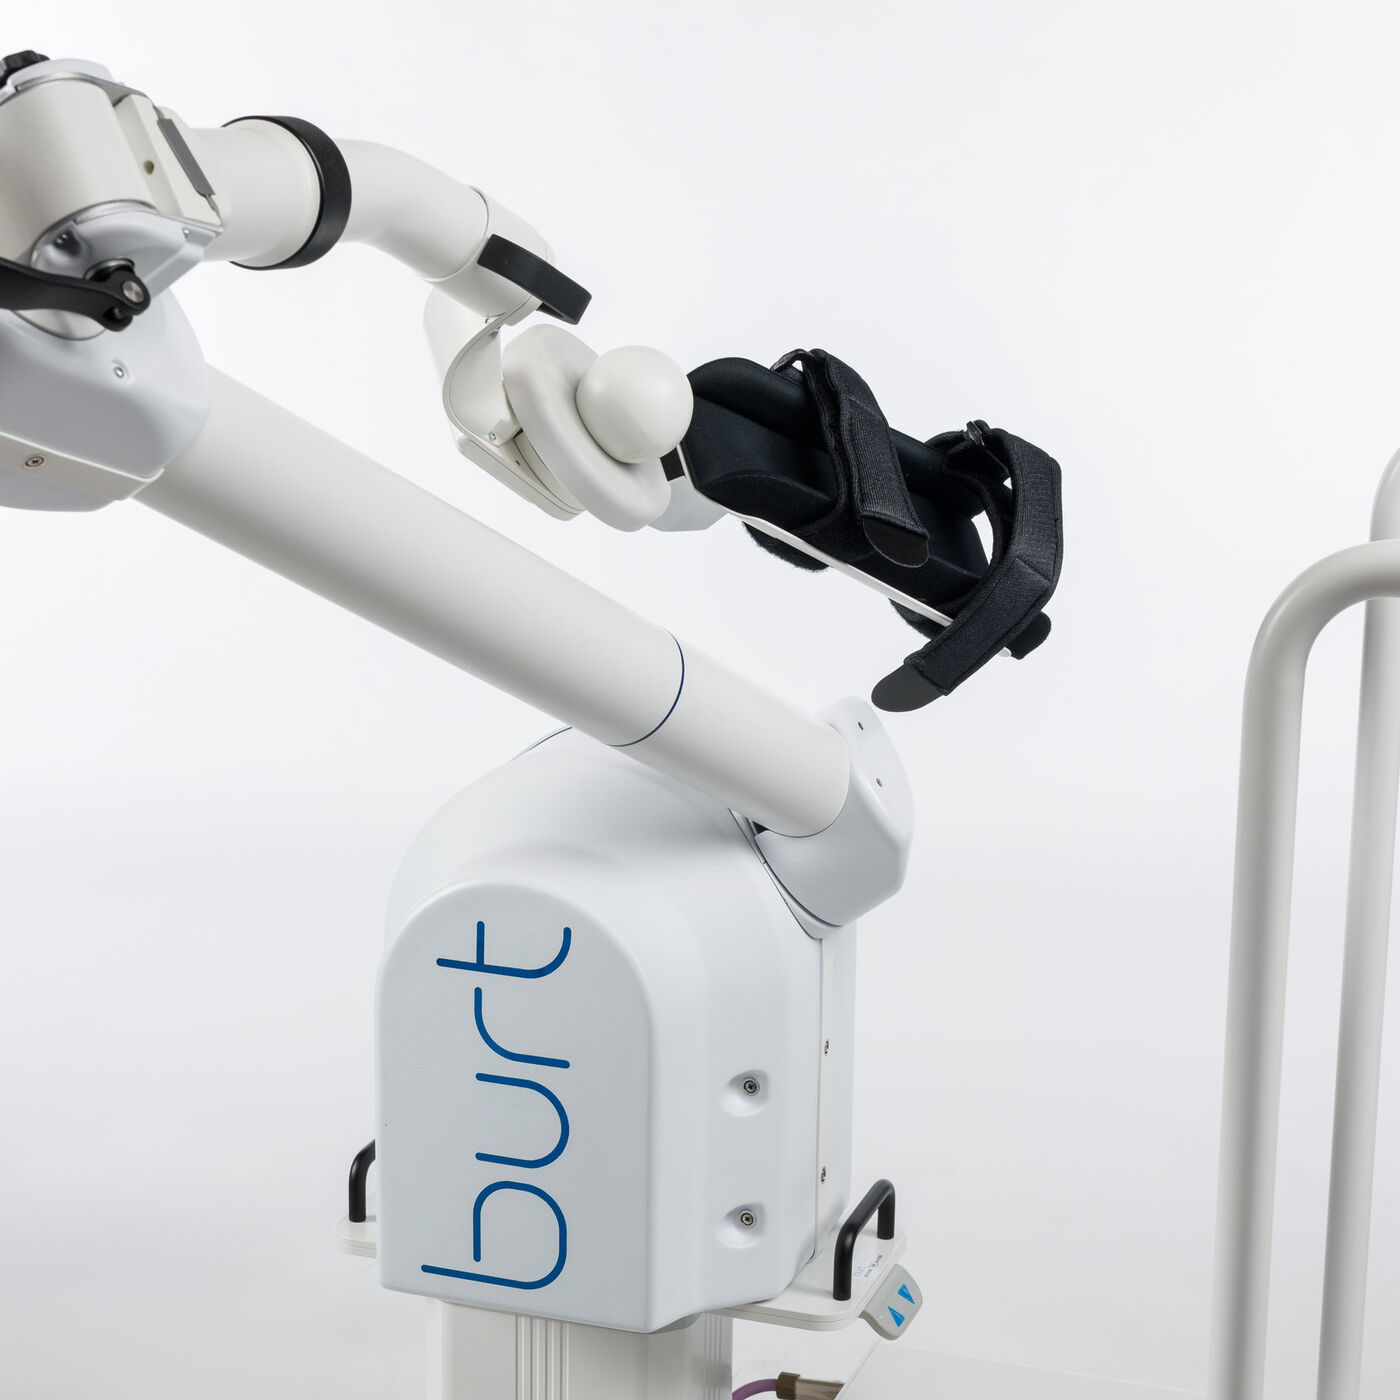 Robots That Can Touch and Feel: Dr. Bill Townsend, Founder of Barrett Technology